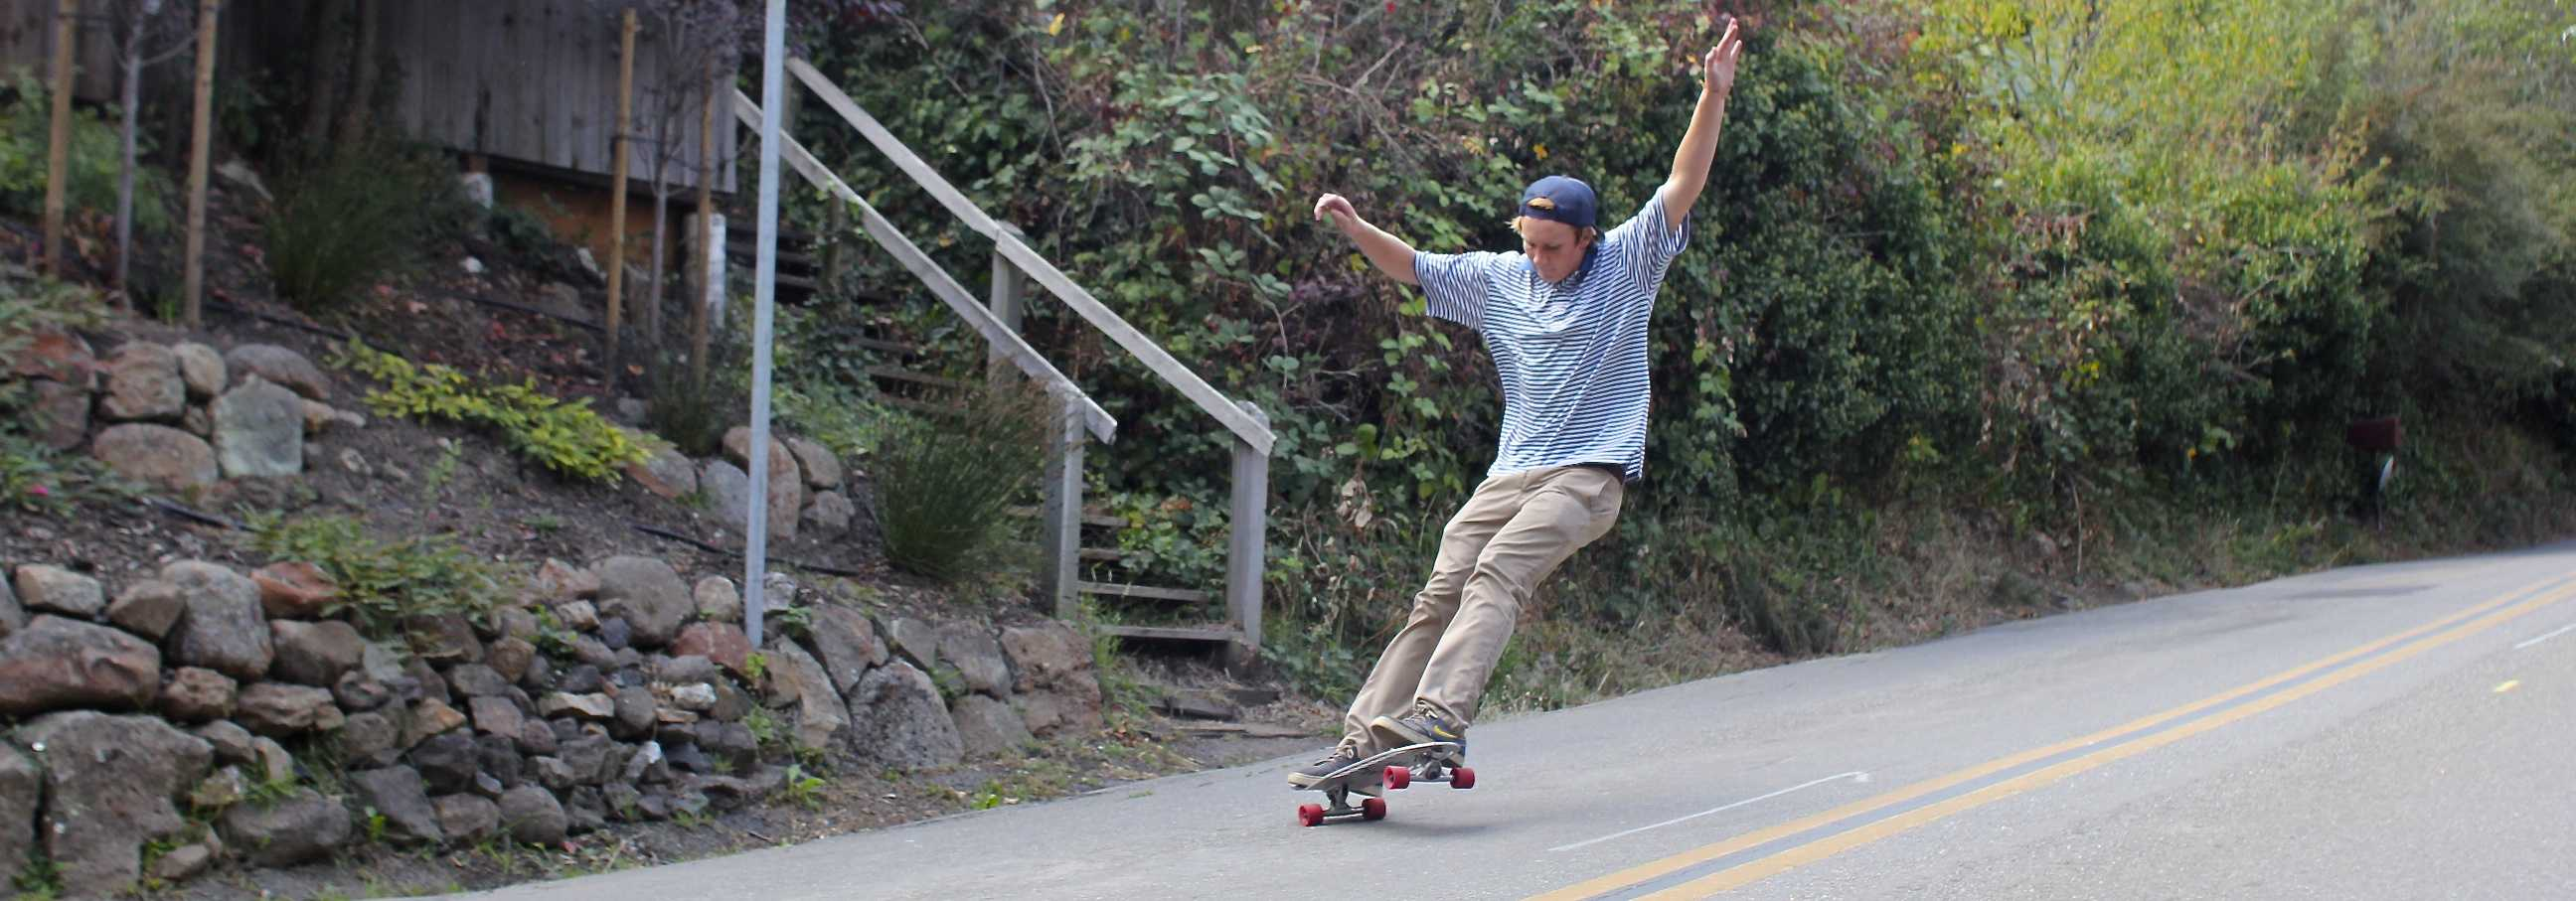 Senior Albert Strietmann rides one of the boards he made for Overland Boards, the company he started with alumnus Spencer Peterson.